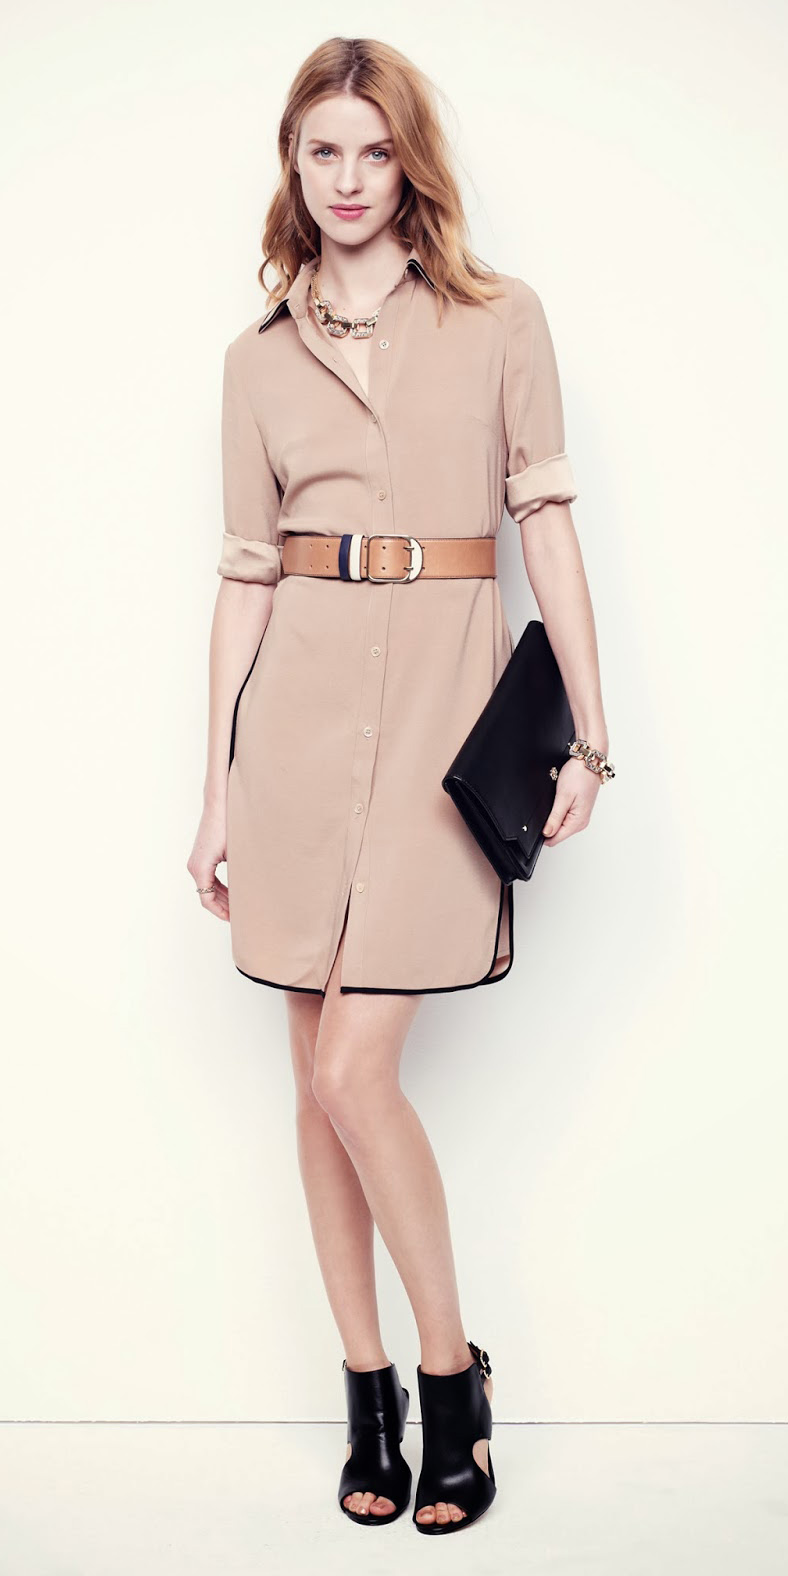 tan-dress-shirt-wide-belt-black-bag-clutch-black-shoe-sandalh-hairr-bib-necklace-spring-summer-work.jpg